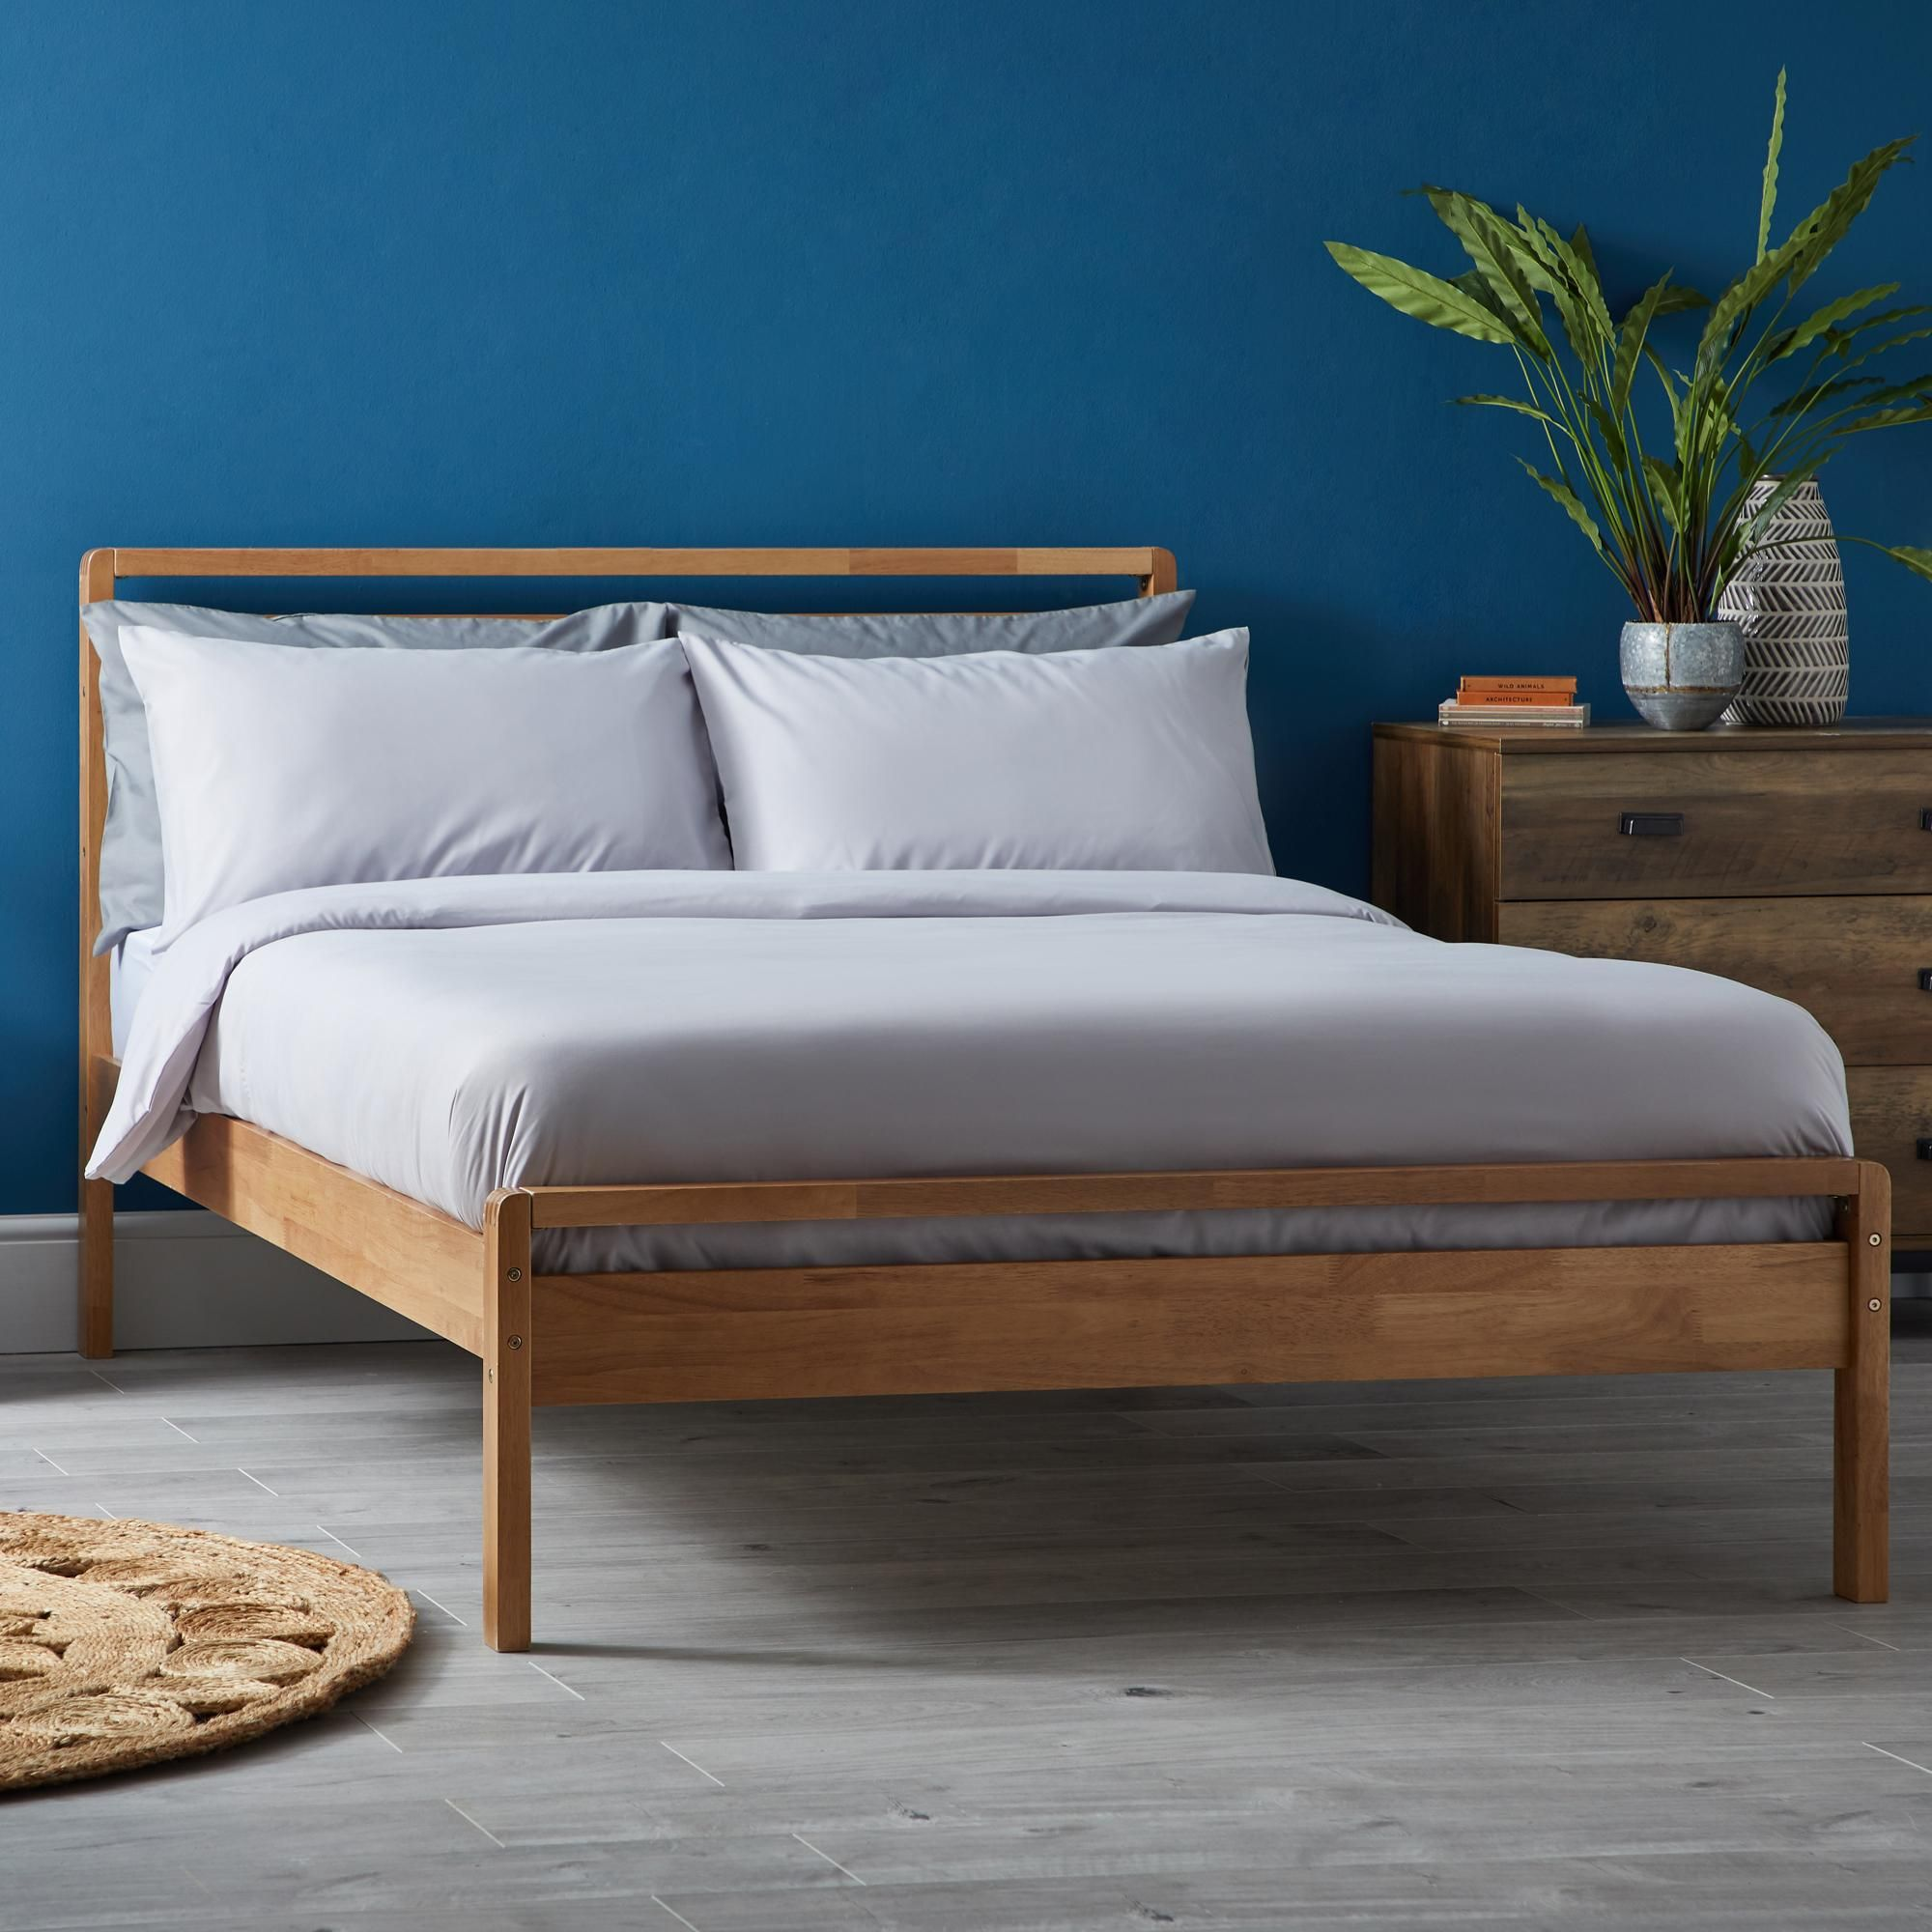 Scandi Mid Century Wooden Bed In 2020 Wooden Bed Small Bed Frame Scandi Bedroom